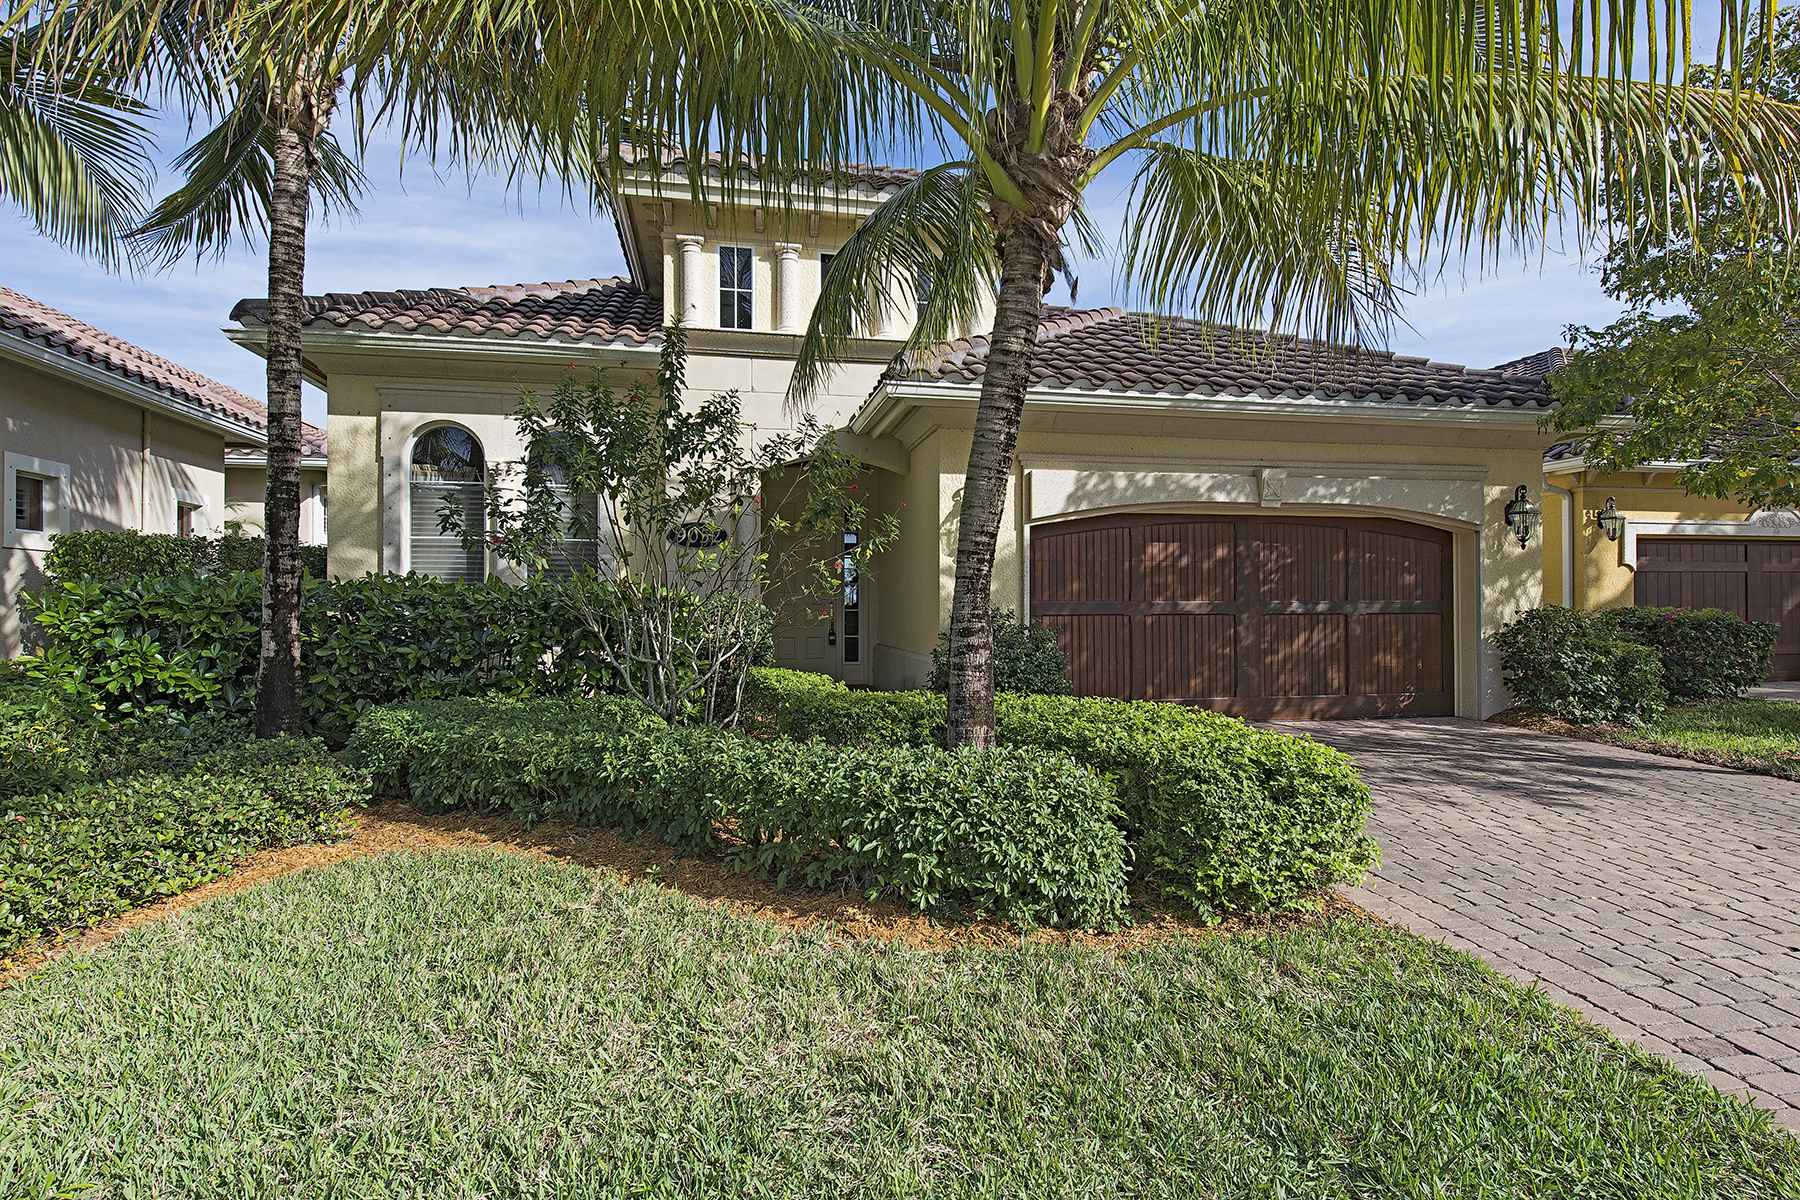 Maison unifamiliale pour l Vente à FIDDLER'S CREEK - CRANBERRY CROSSING 9052 Cherry Oaks Trl Naples, Florida, 34114 États-Unis